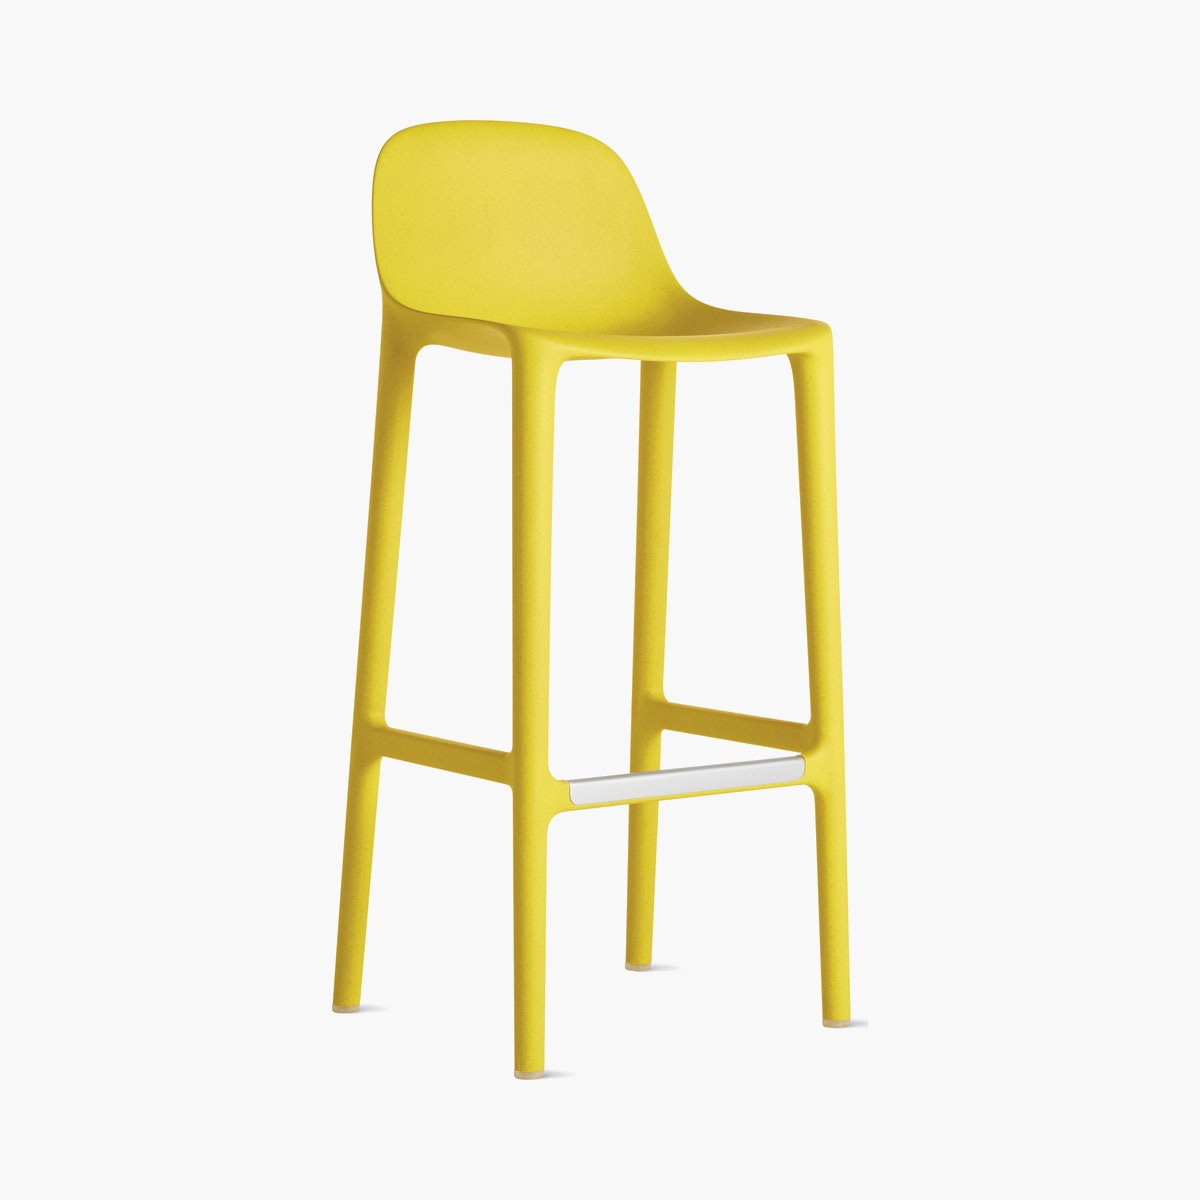 Broom Stool